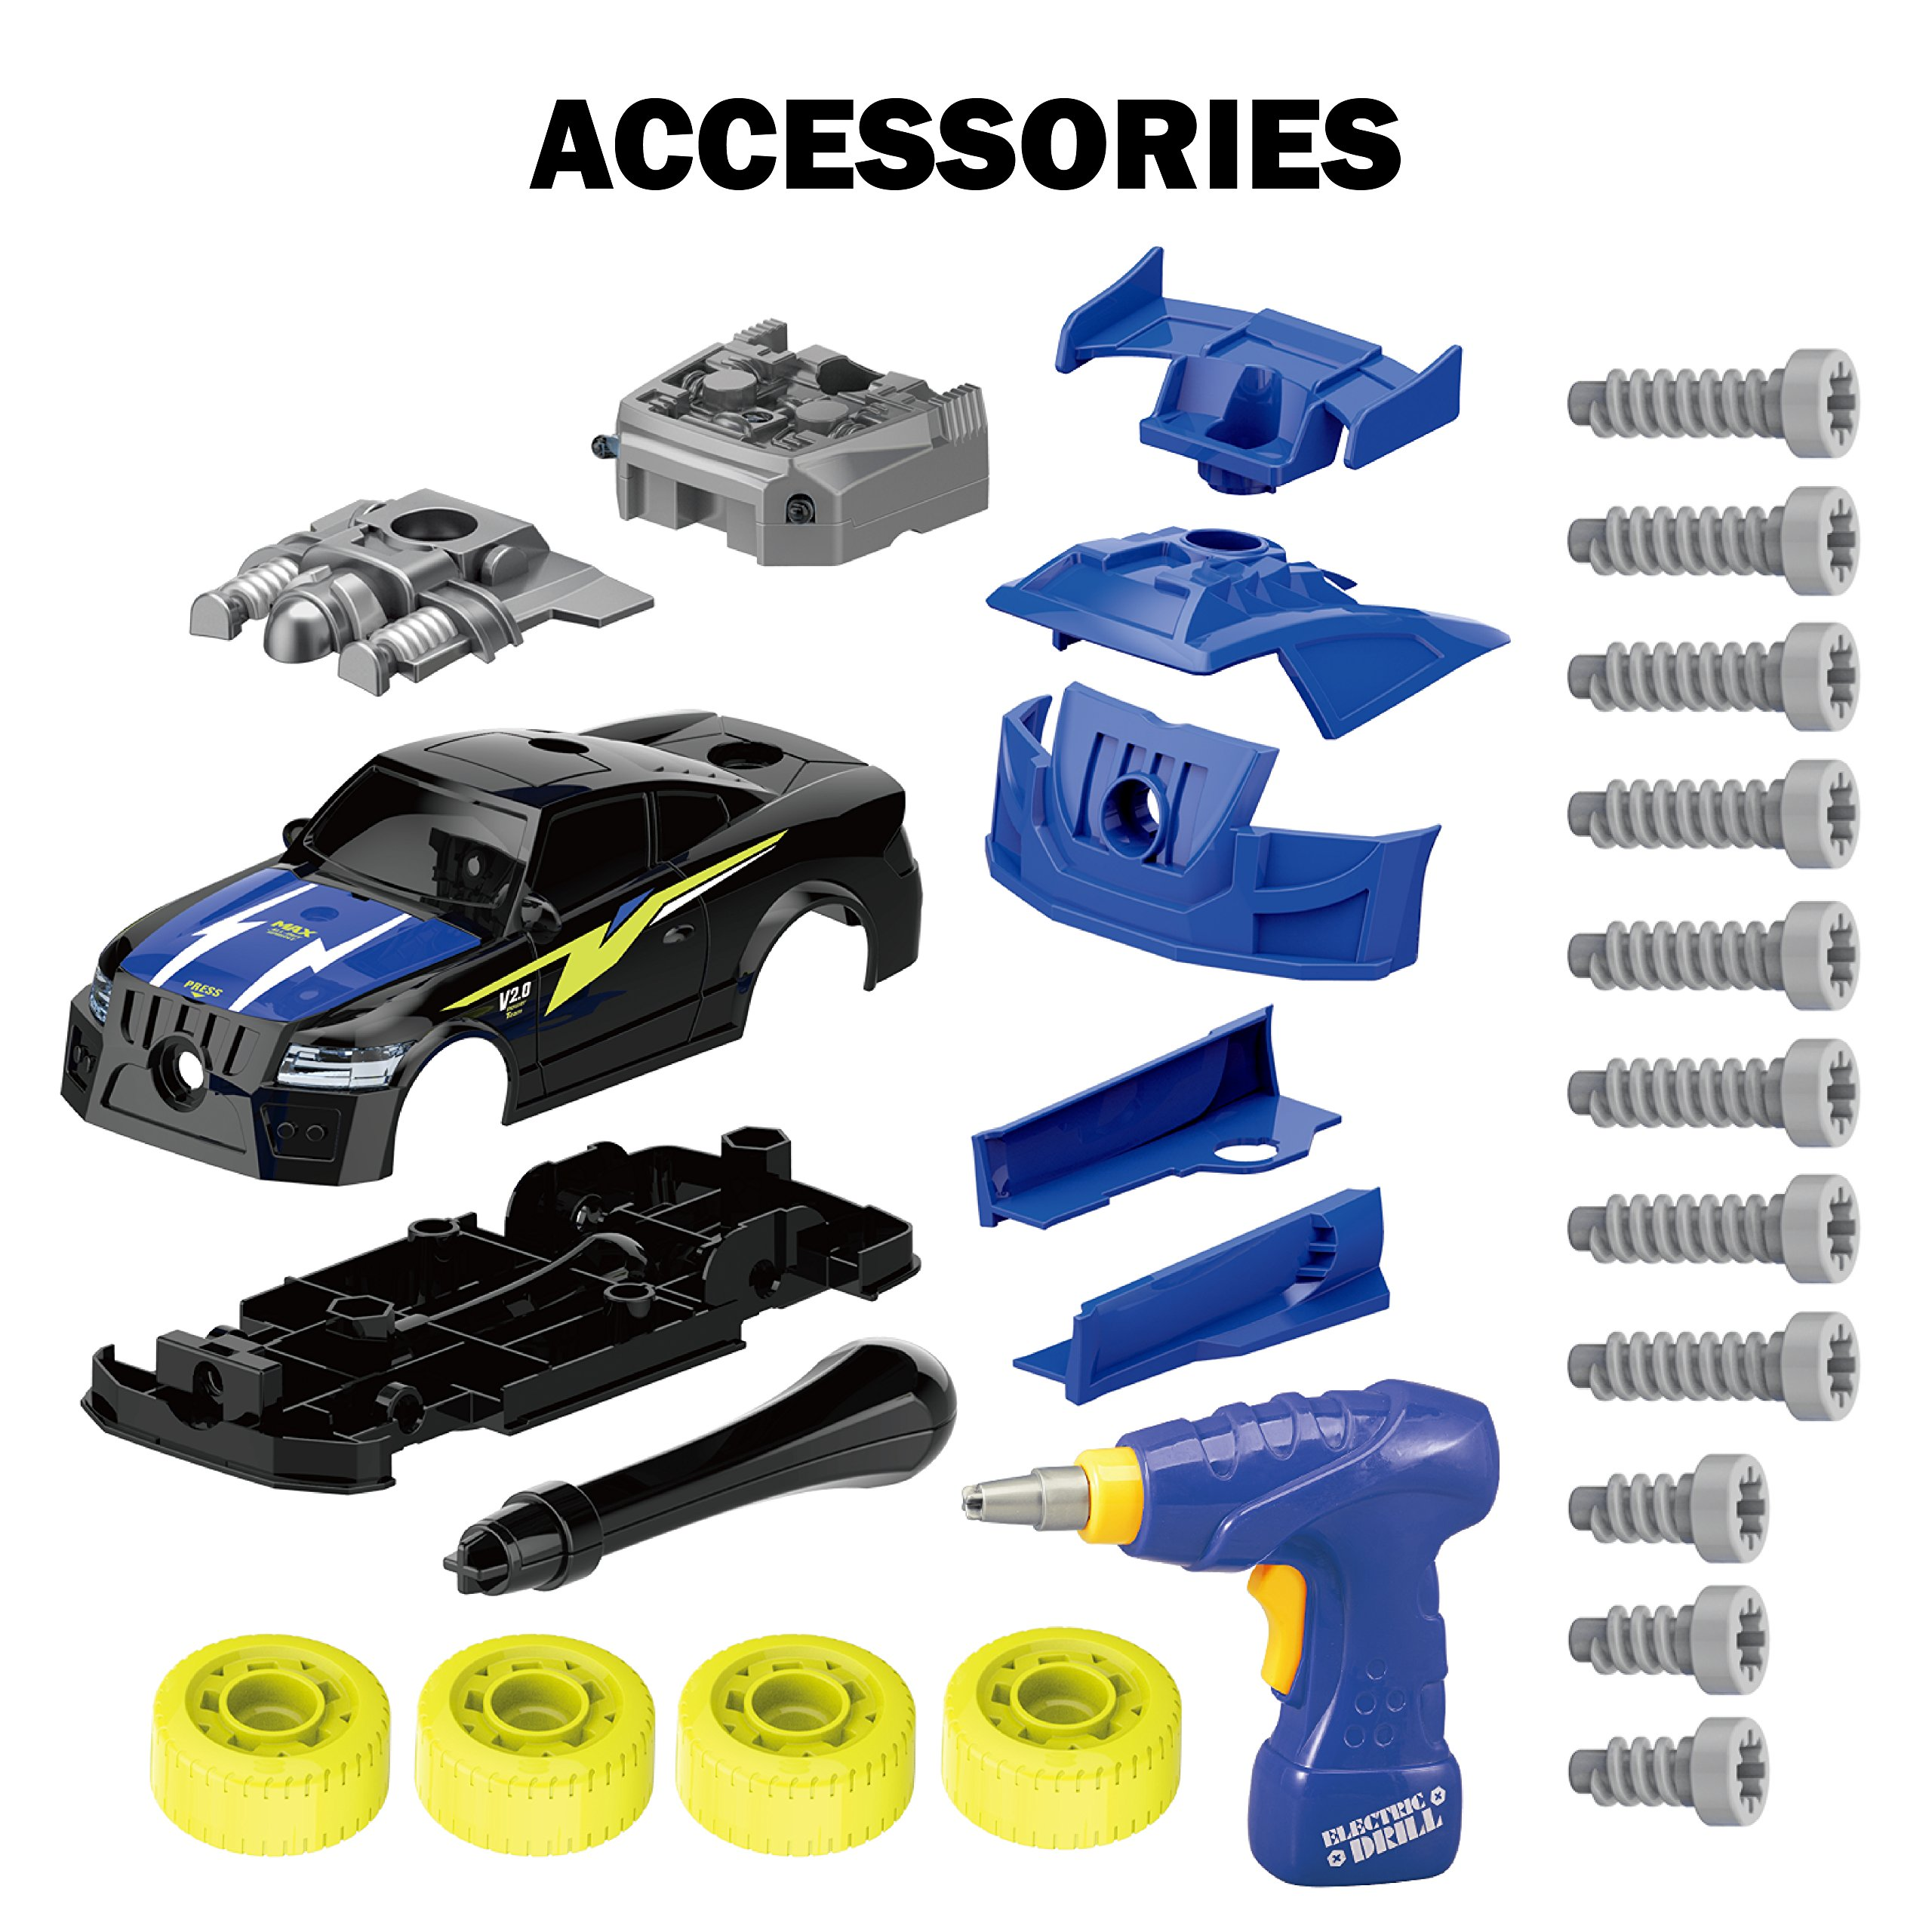 Maxxrace Take Apart Racing Car, STEM Toys 26 Pieces Assembly Car Toys with Drill Tool, Lights and Sounds, Gifts for Kids Aged 3+ by Maxxrace (Image #6)